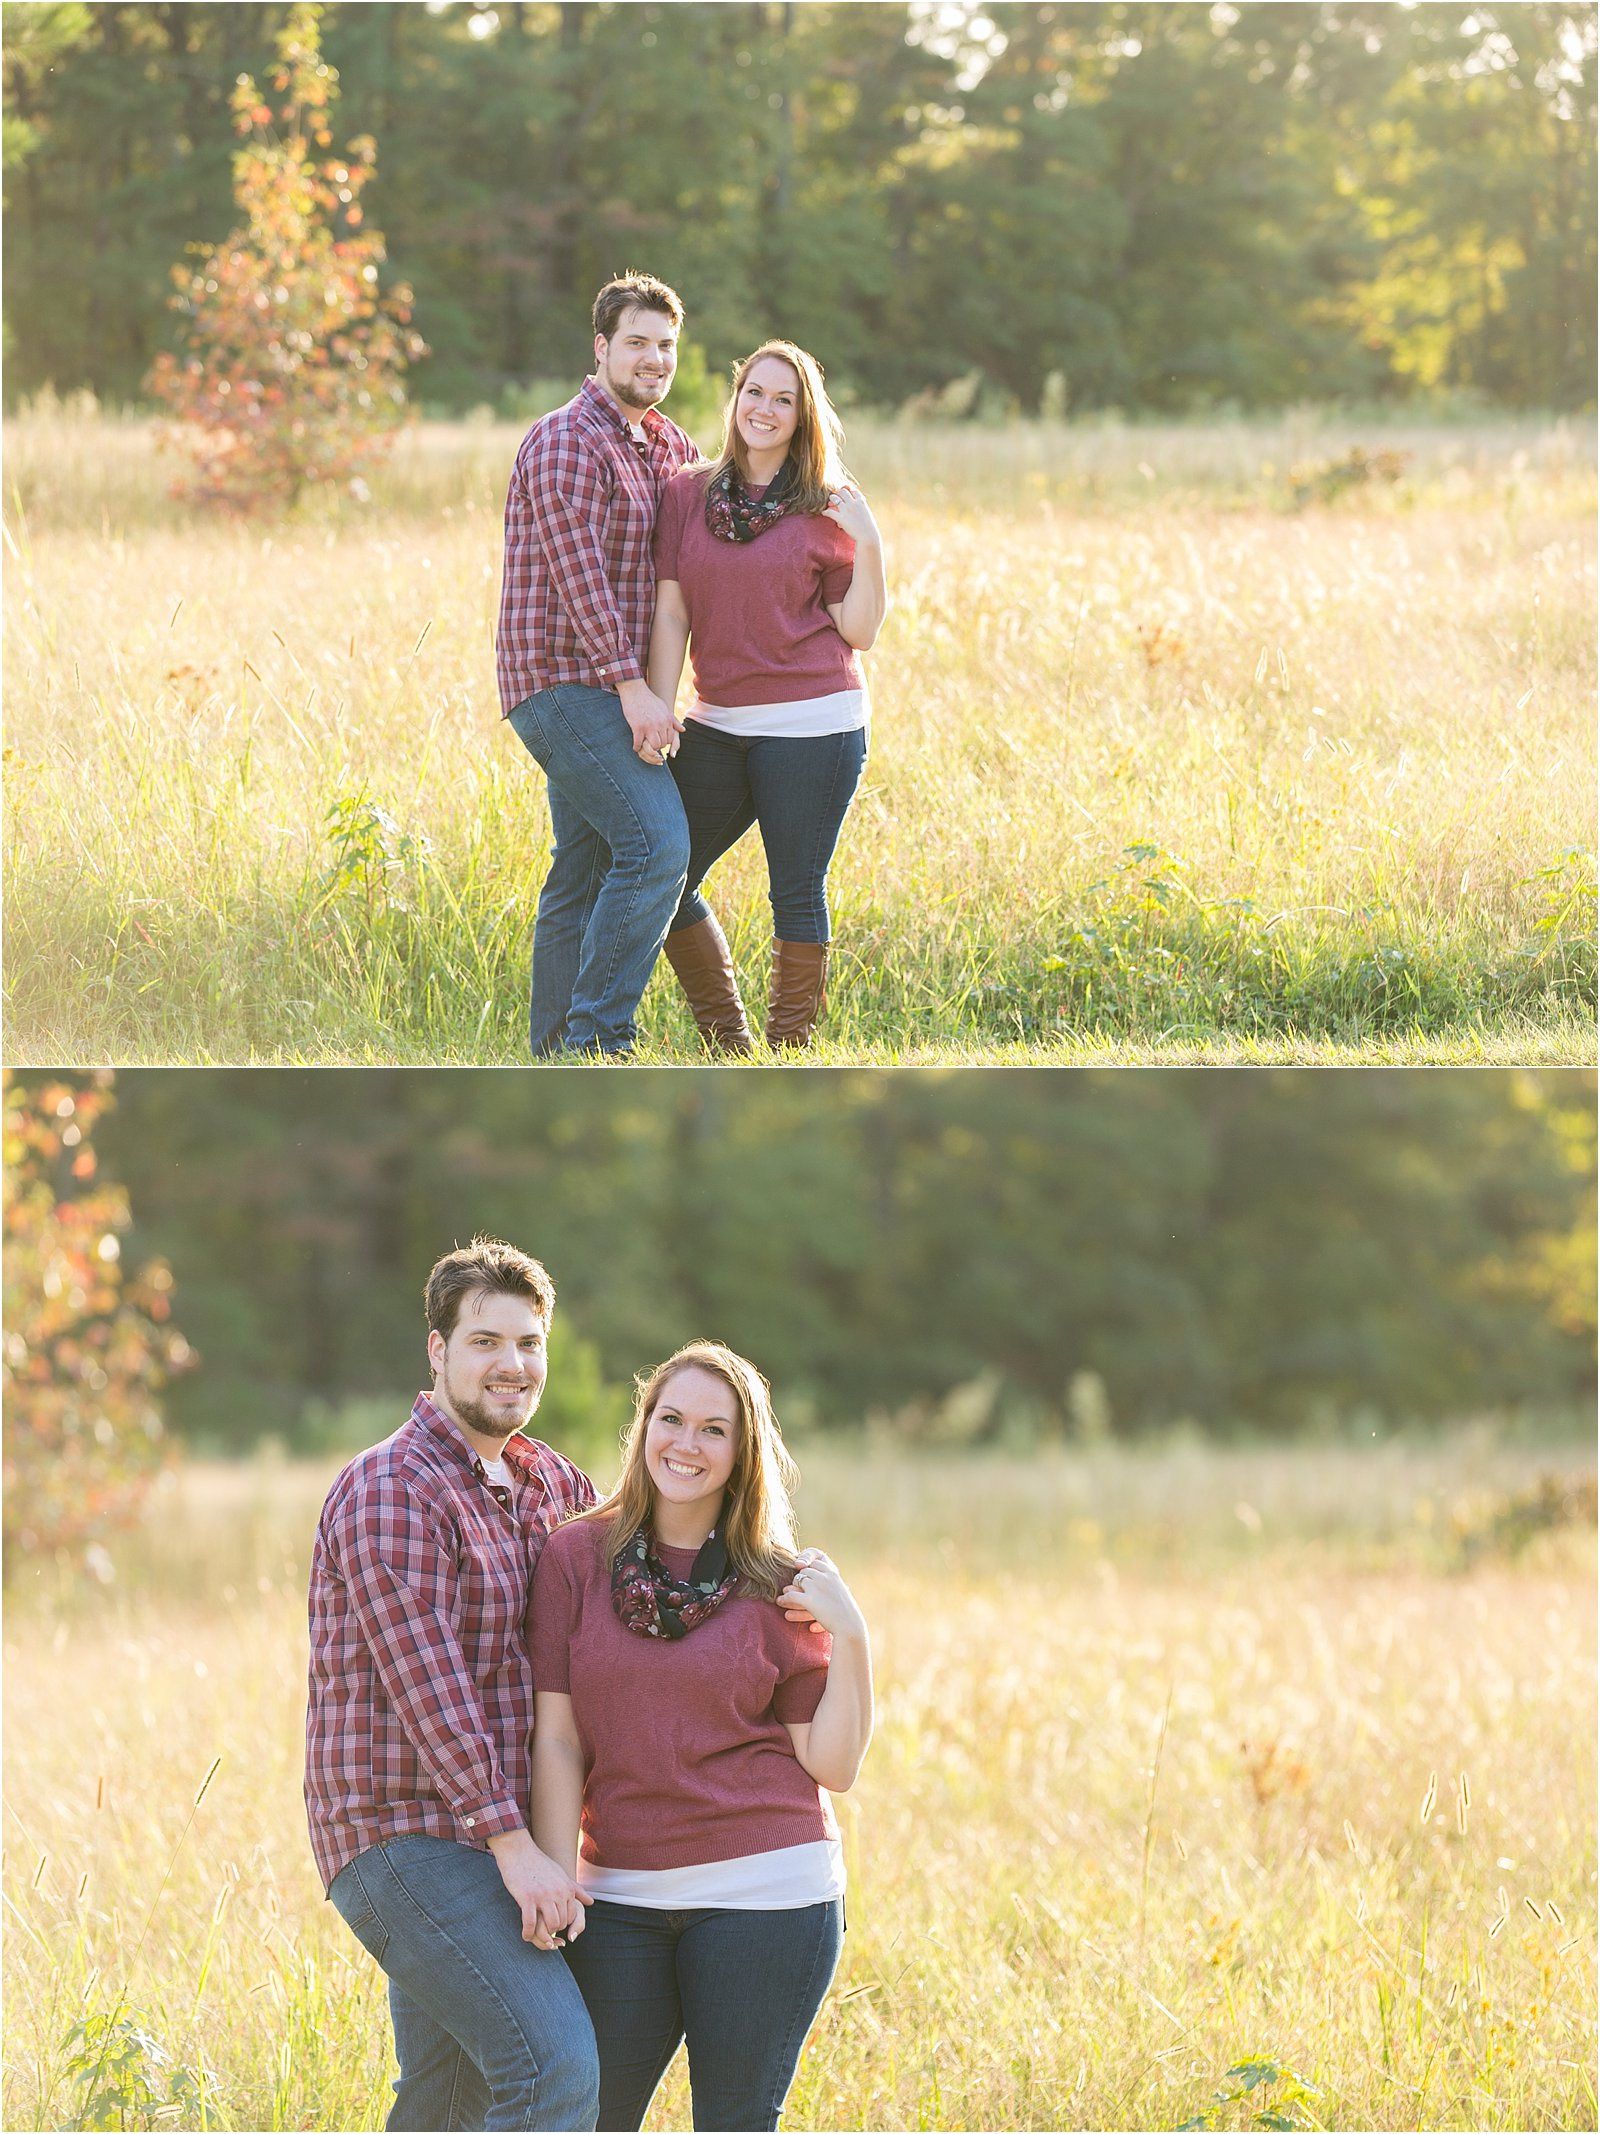 jessica_ryan_photography_pumpkin_patch_engagement_portraits_fall_october_engagements_virginia_beach_chesapeake_0295